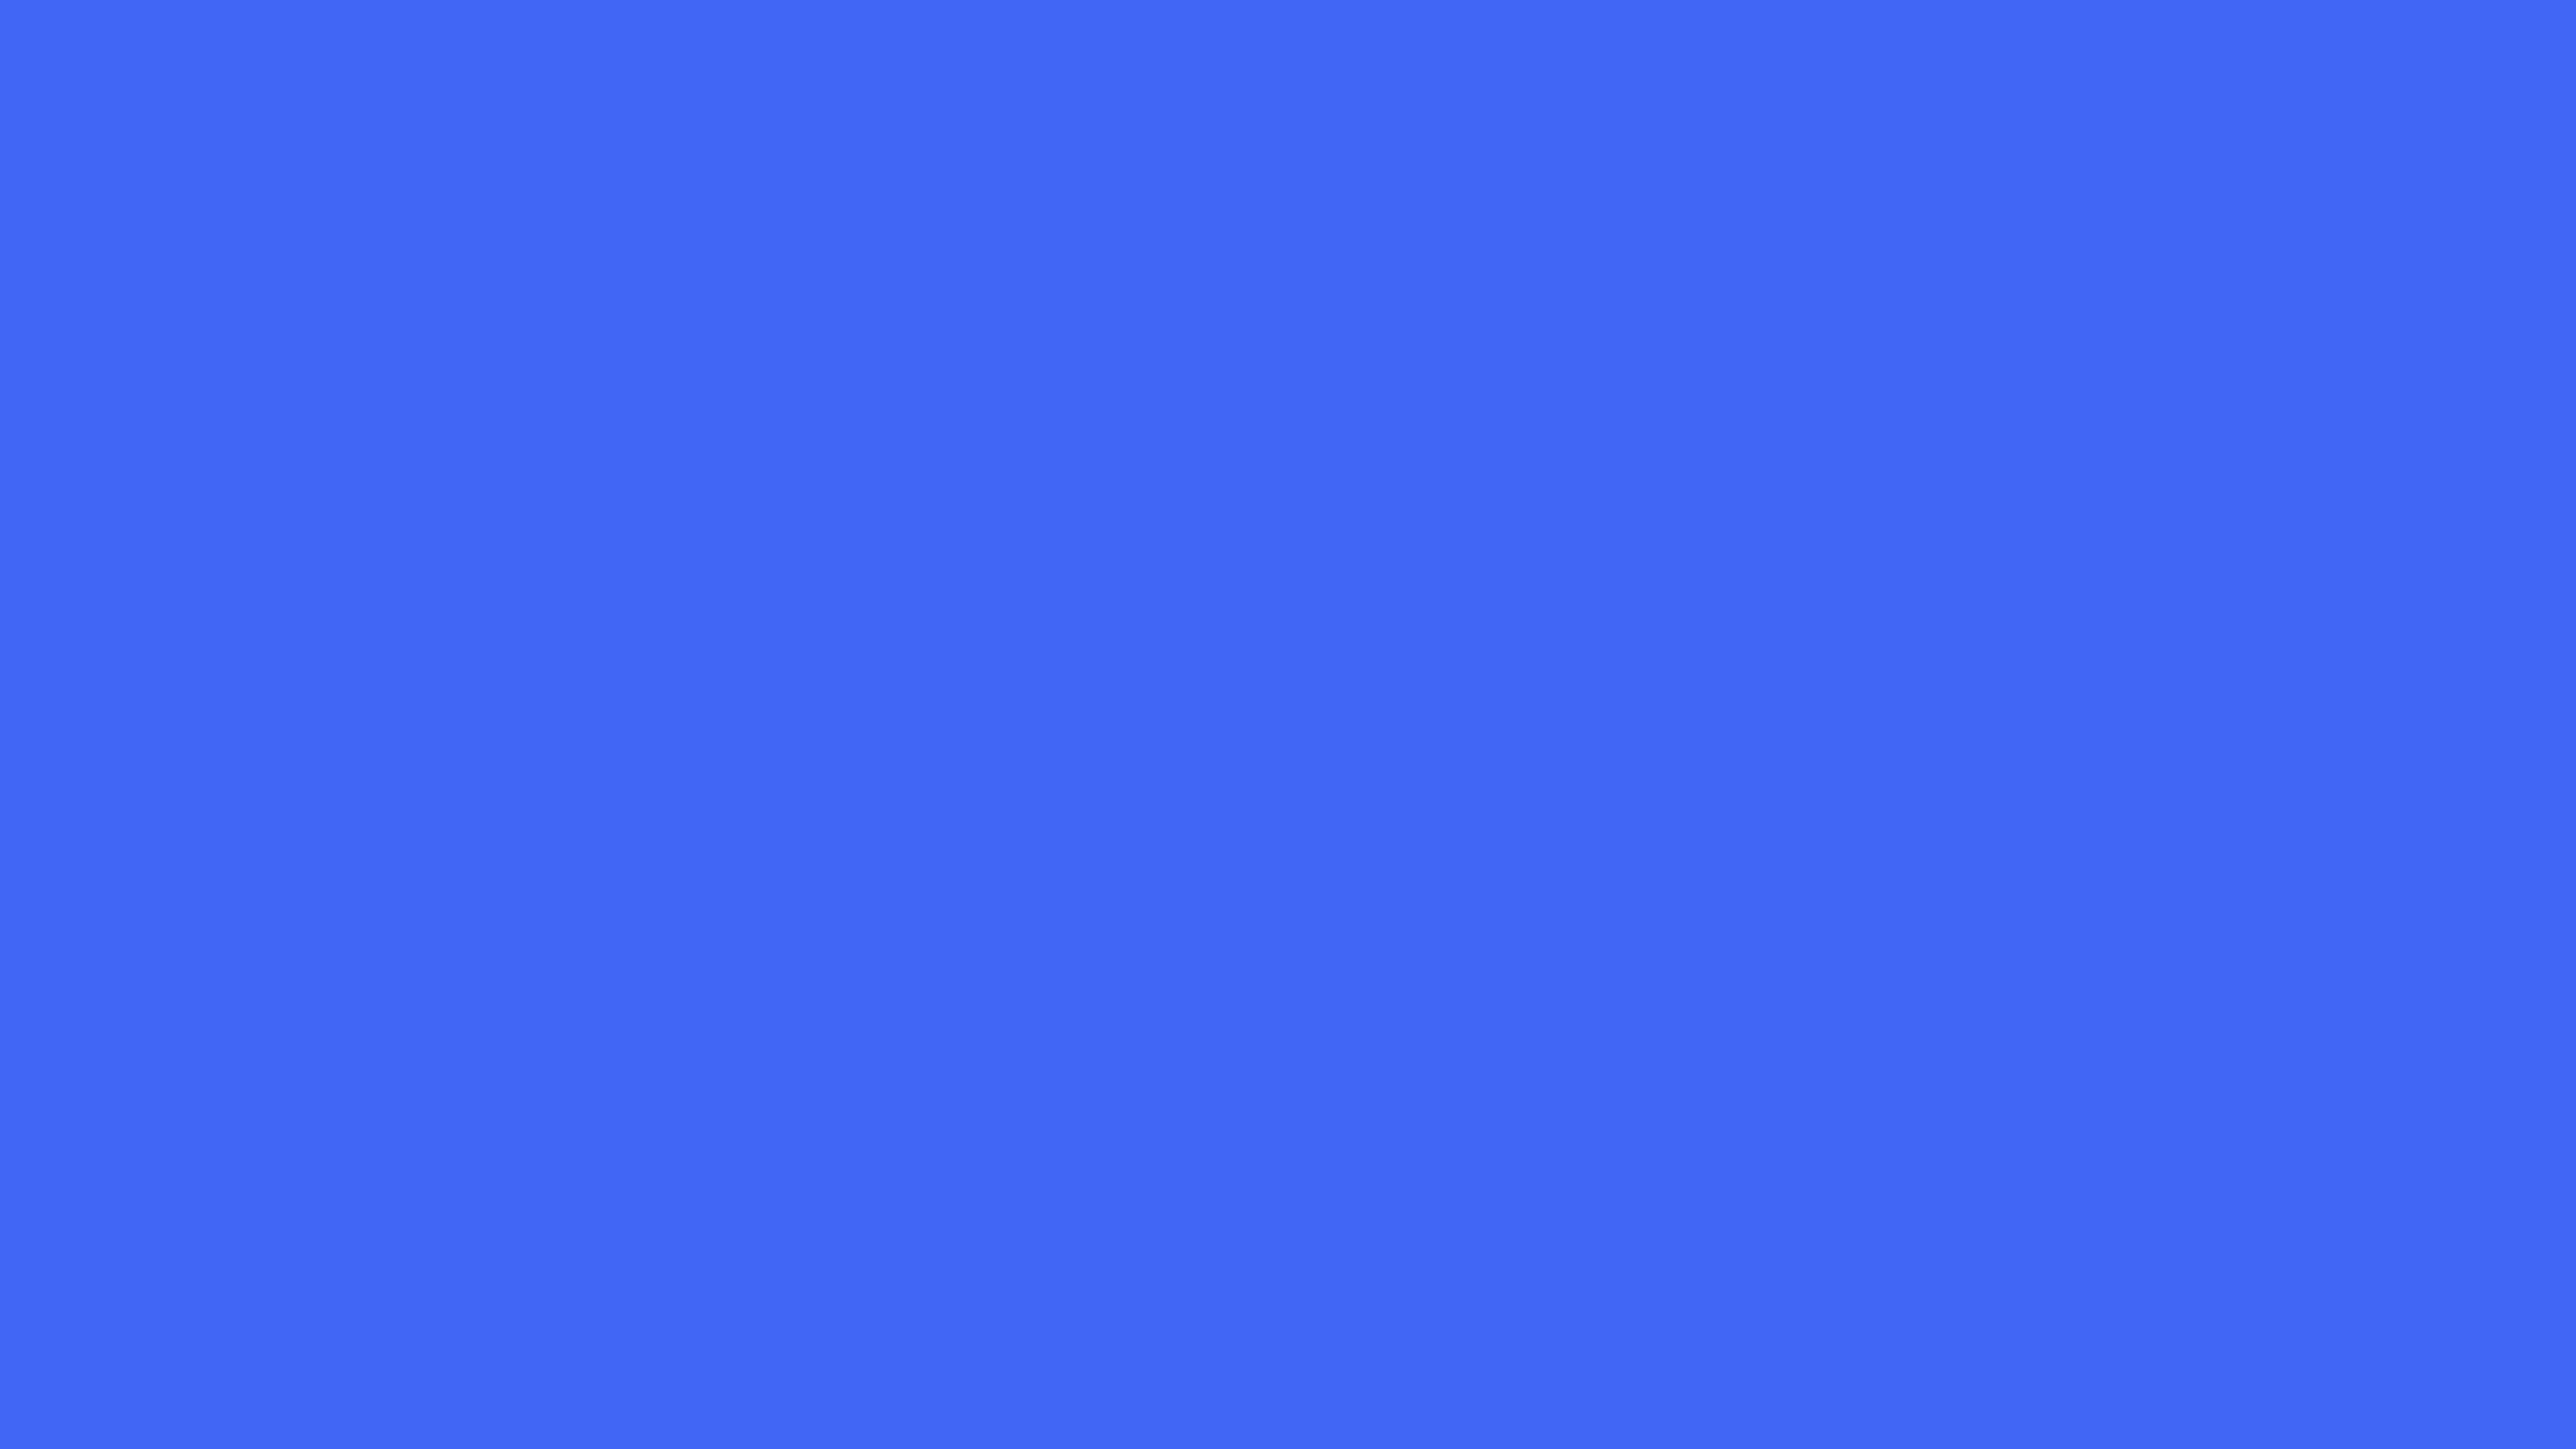 3840x2160 Ultramarine Blue Solid Color Background